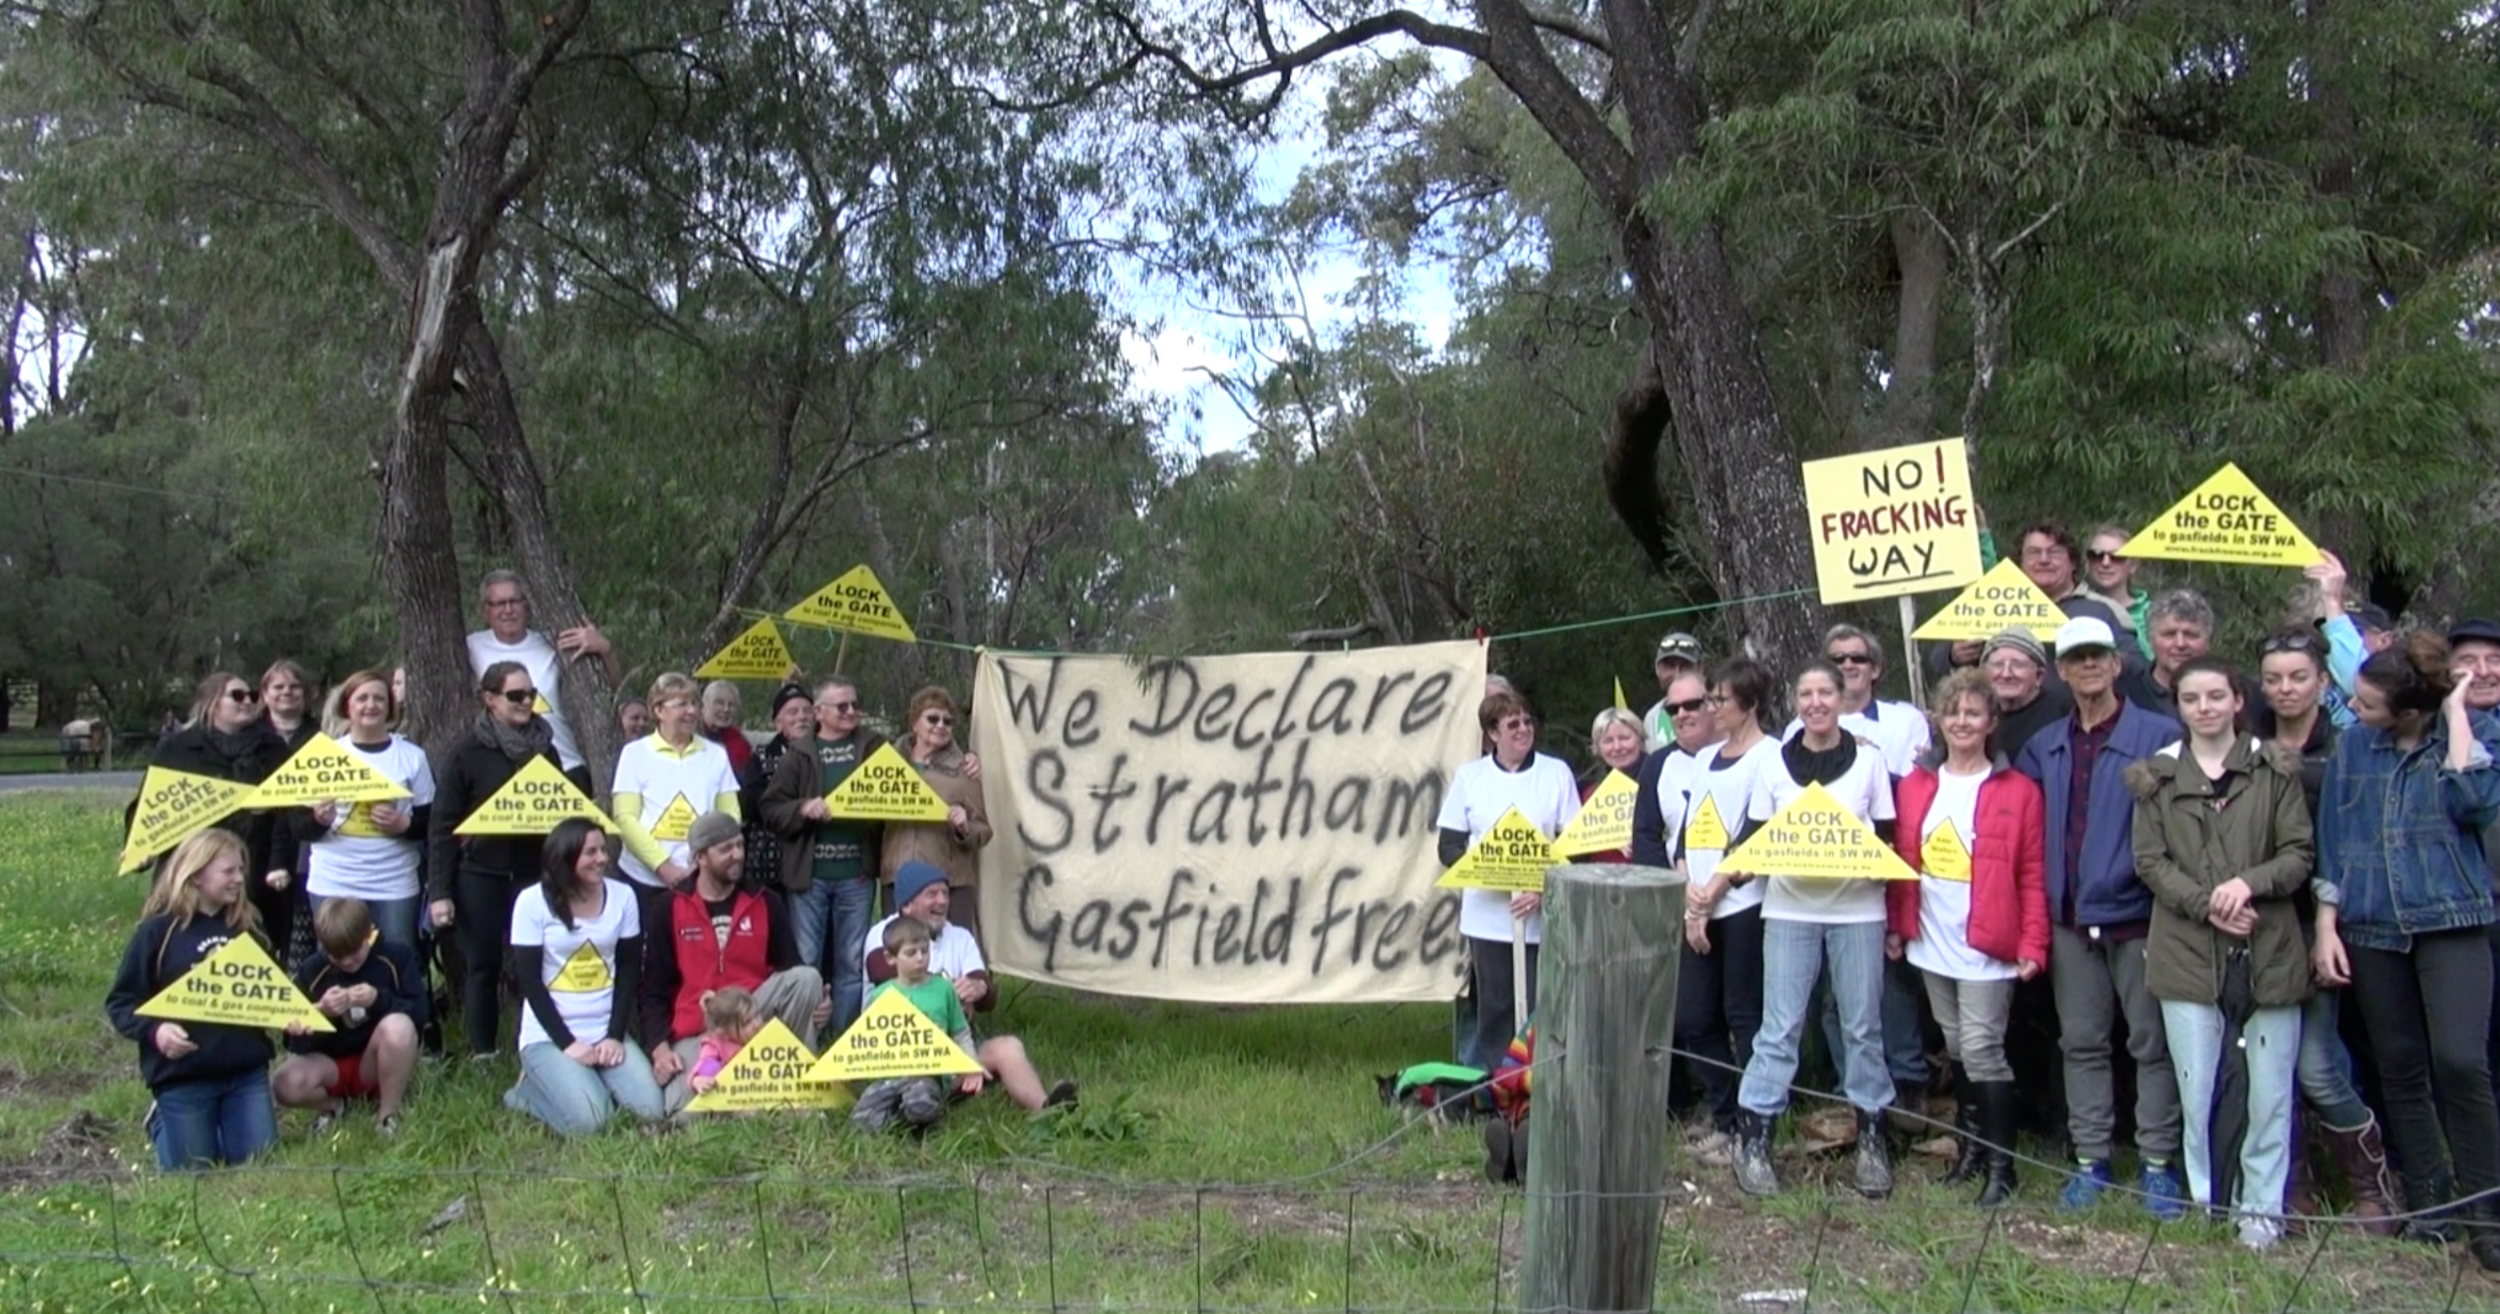 Set in Western Australia,  A Fractured State  follows the high stakes battle currently underway to protect land, water and health from the unconventional gas industry and fracking. With more than 50 million hectares of the state under licence or application from oil and gas companies, communities from the Kimberley to the south west are standing up against the might of the fracking industry and its government backers. Communities have learned from the mistakes of the US and are fighting to protect the water resources of one of the driest places on the planet. But time is running out.    WATCH THE TRAILER